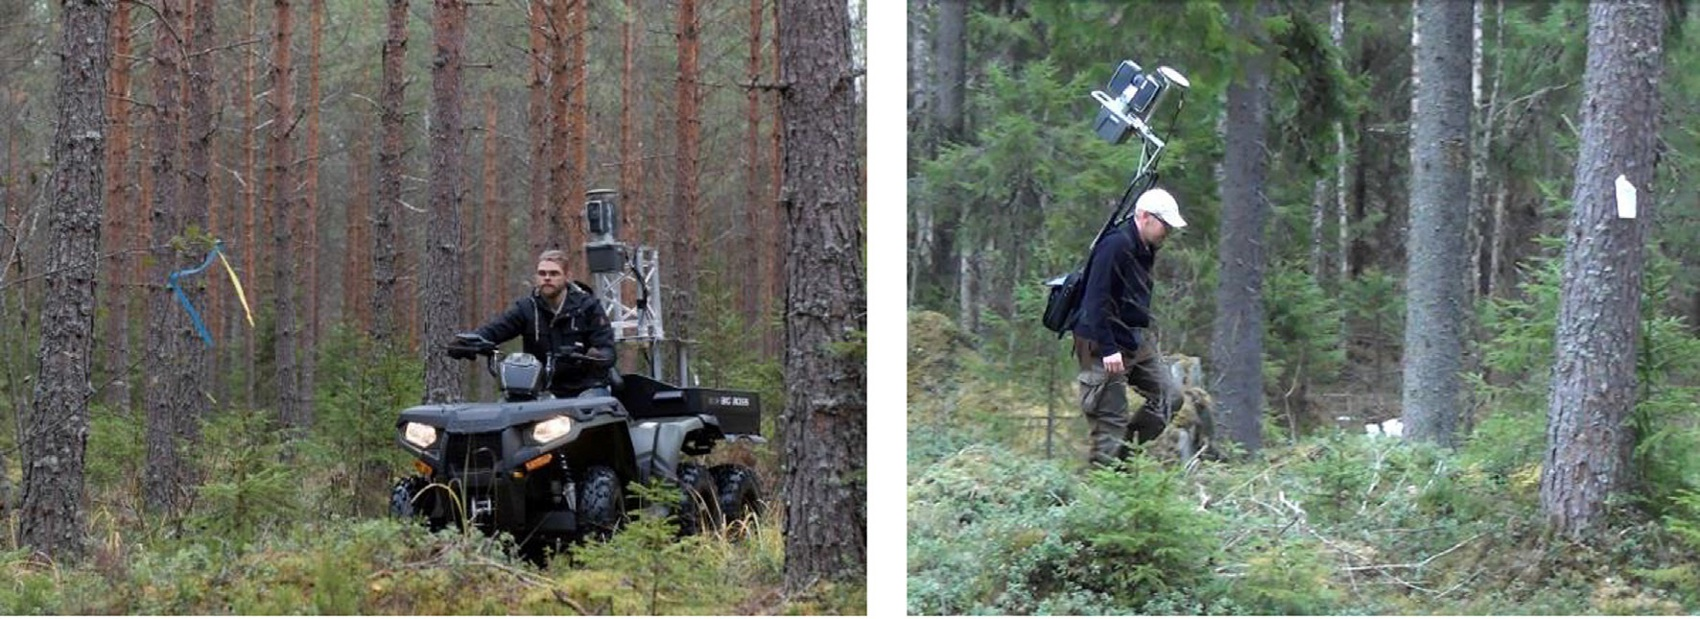 all-terrain vehicle-based and personal laser scanning of forest